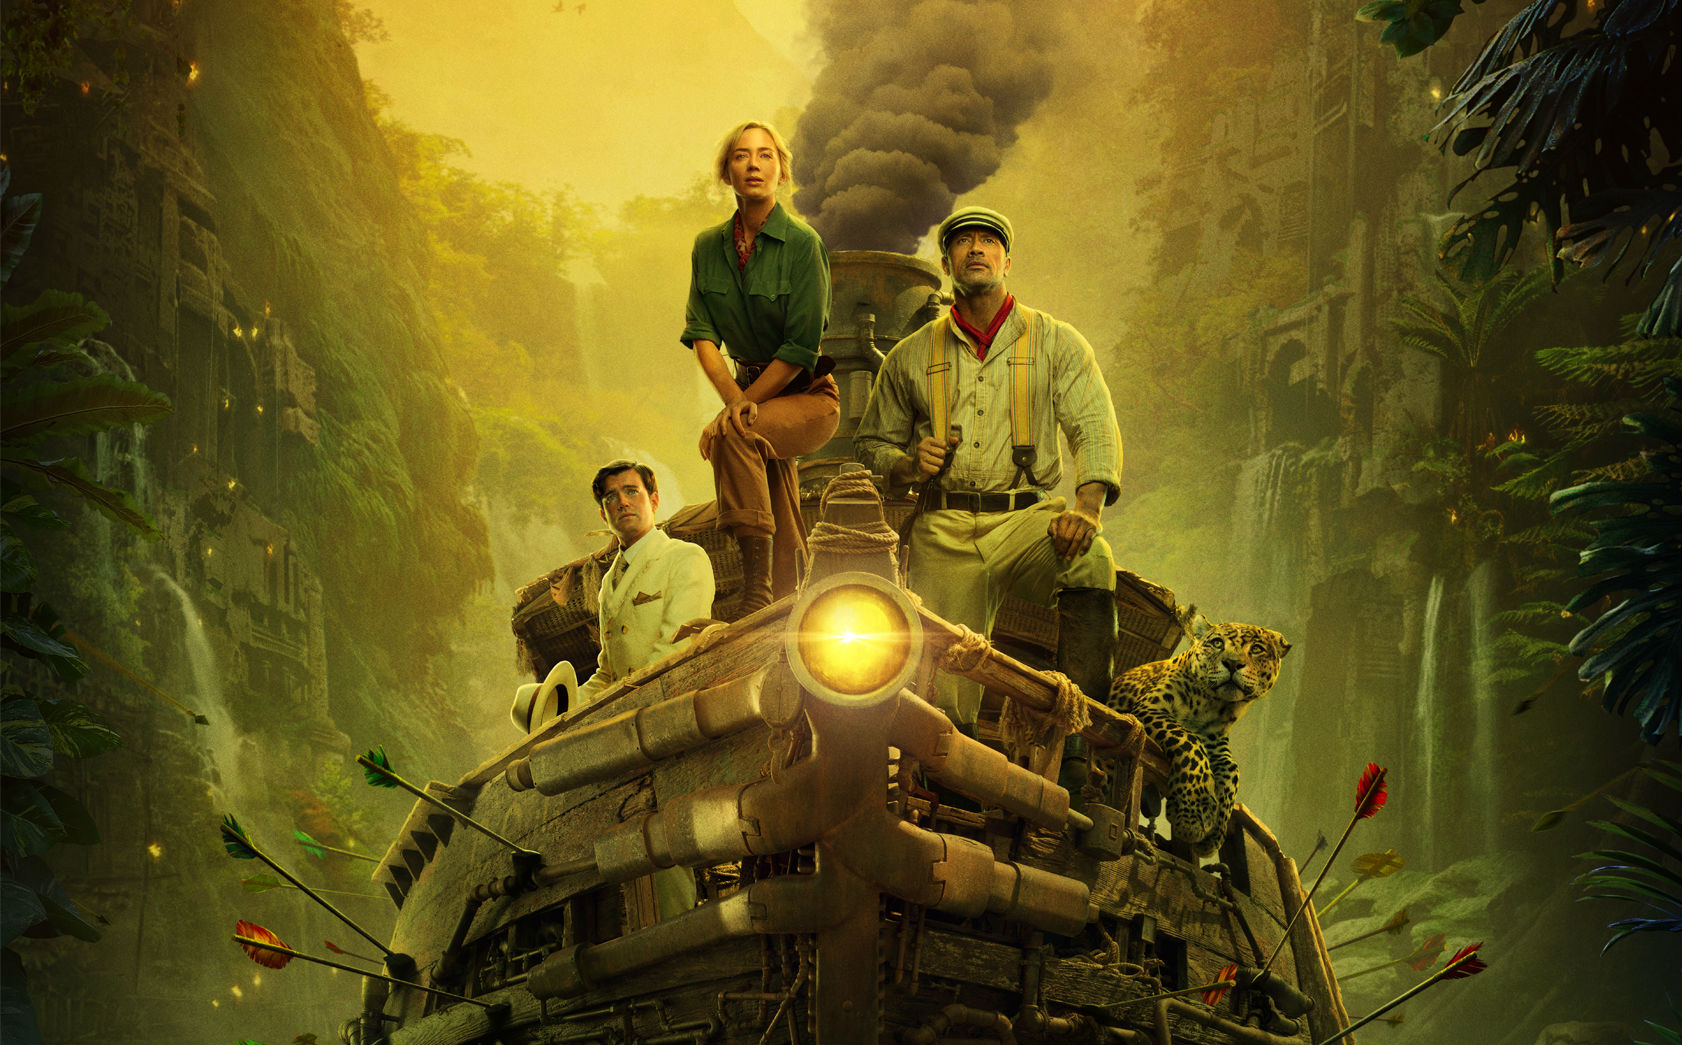 Disney's Jungle Cruise Looks Like A Rip-Roaring Good Time In New Trailer!